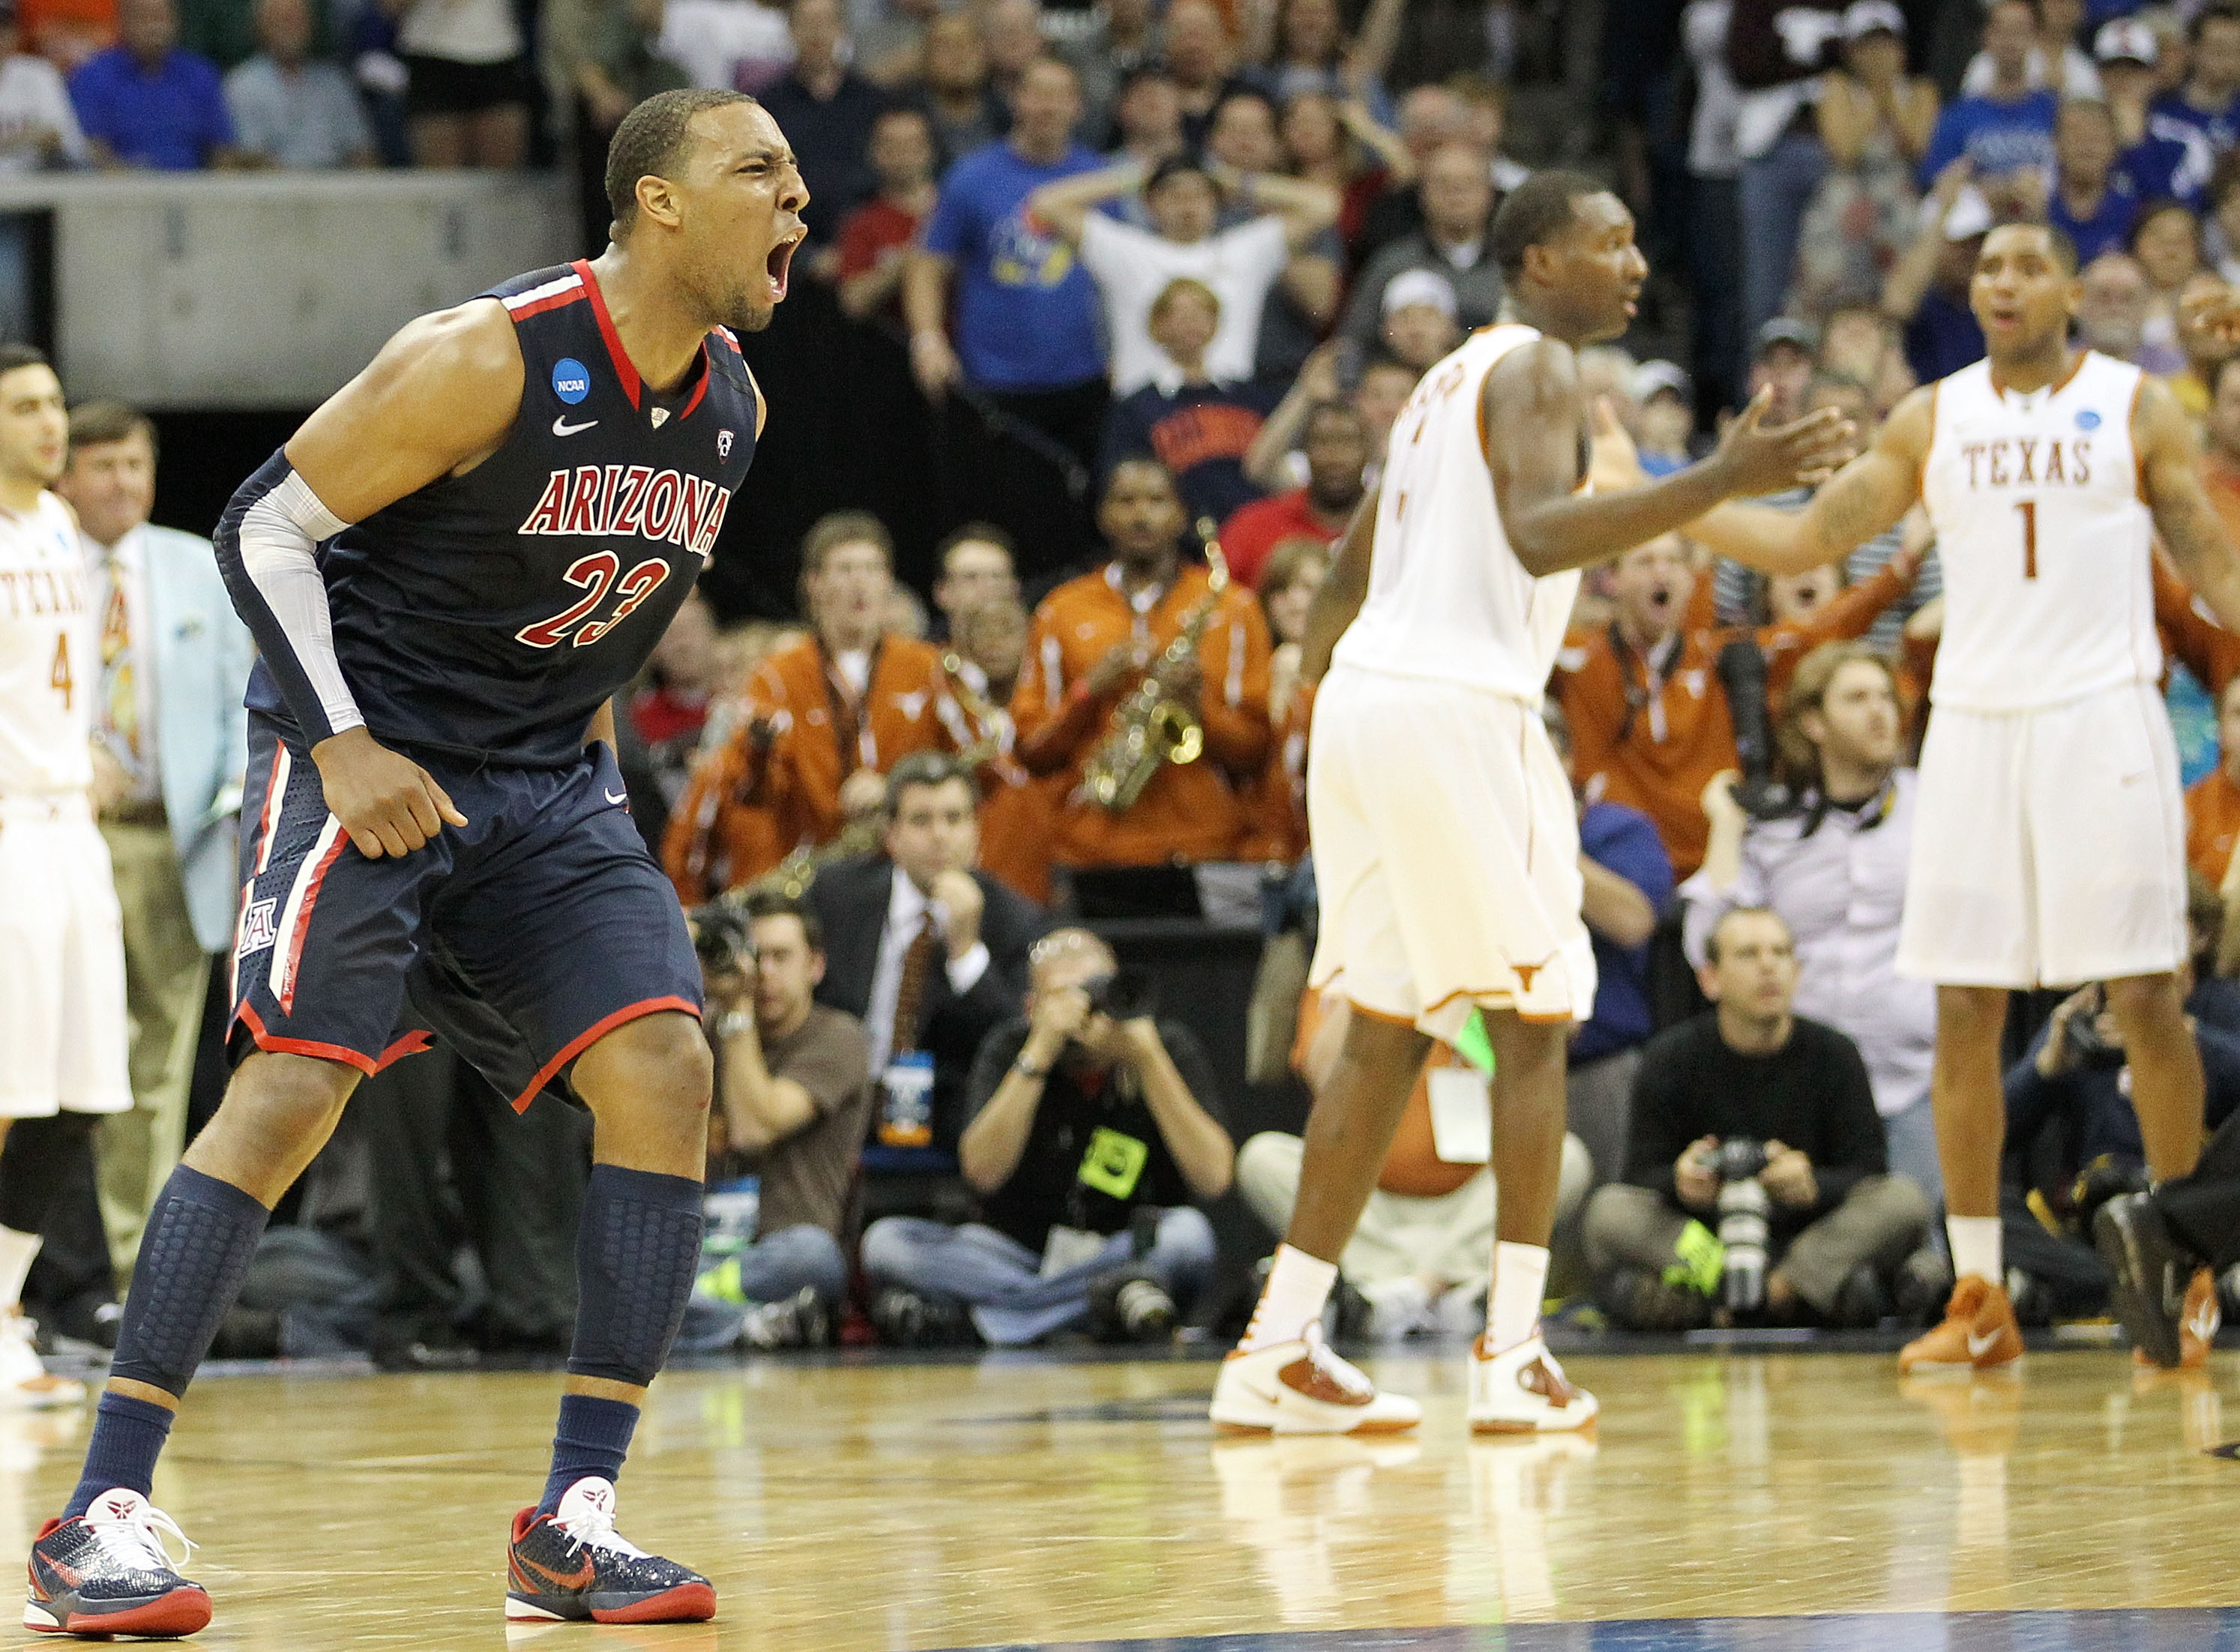 TULSA, OK - MARCH 20:  Derrick Williams #23 of the Arizona Wildcats celebrates after defeating the Texas Longhorns 70-69 in the third round of the 2011 NCAA men's basketball tournament at BOK Center on March 20, 2011 in Tulsa, Oklahoma.  (Photo by Ronald